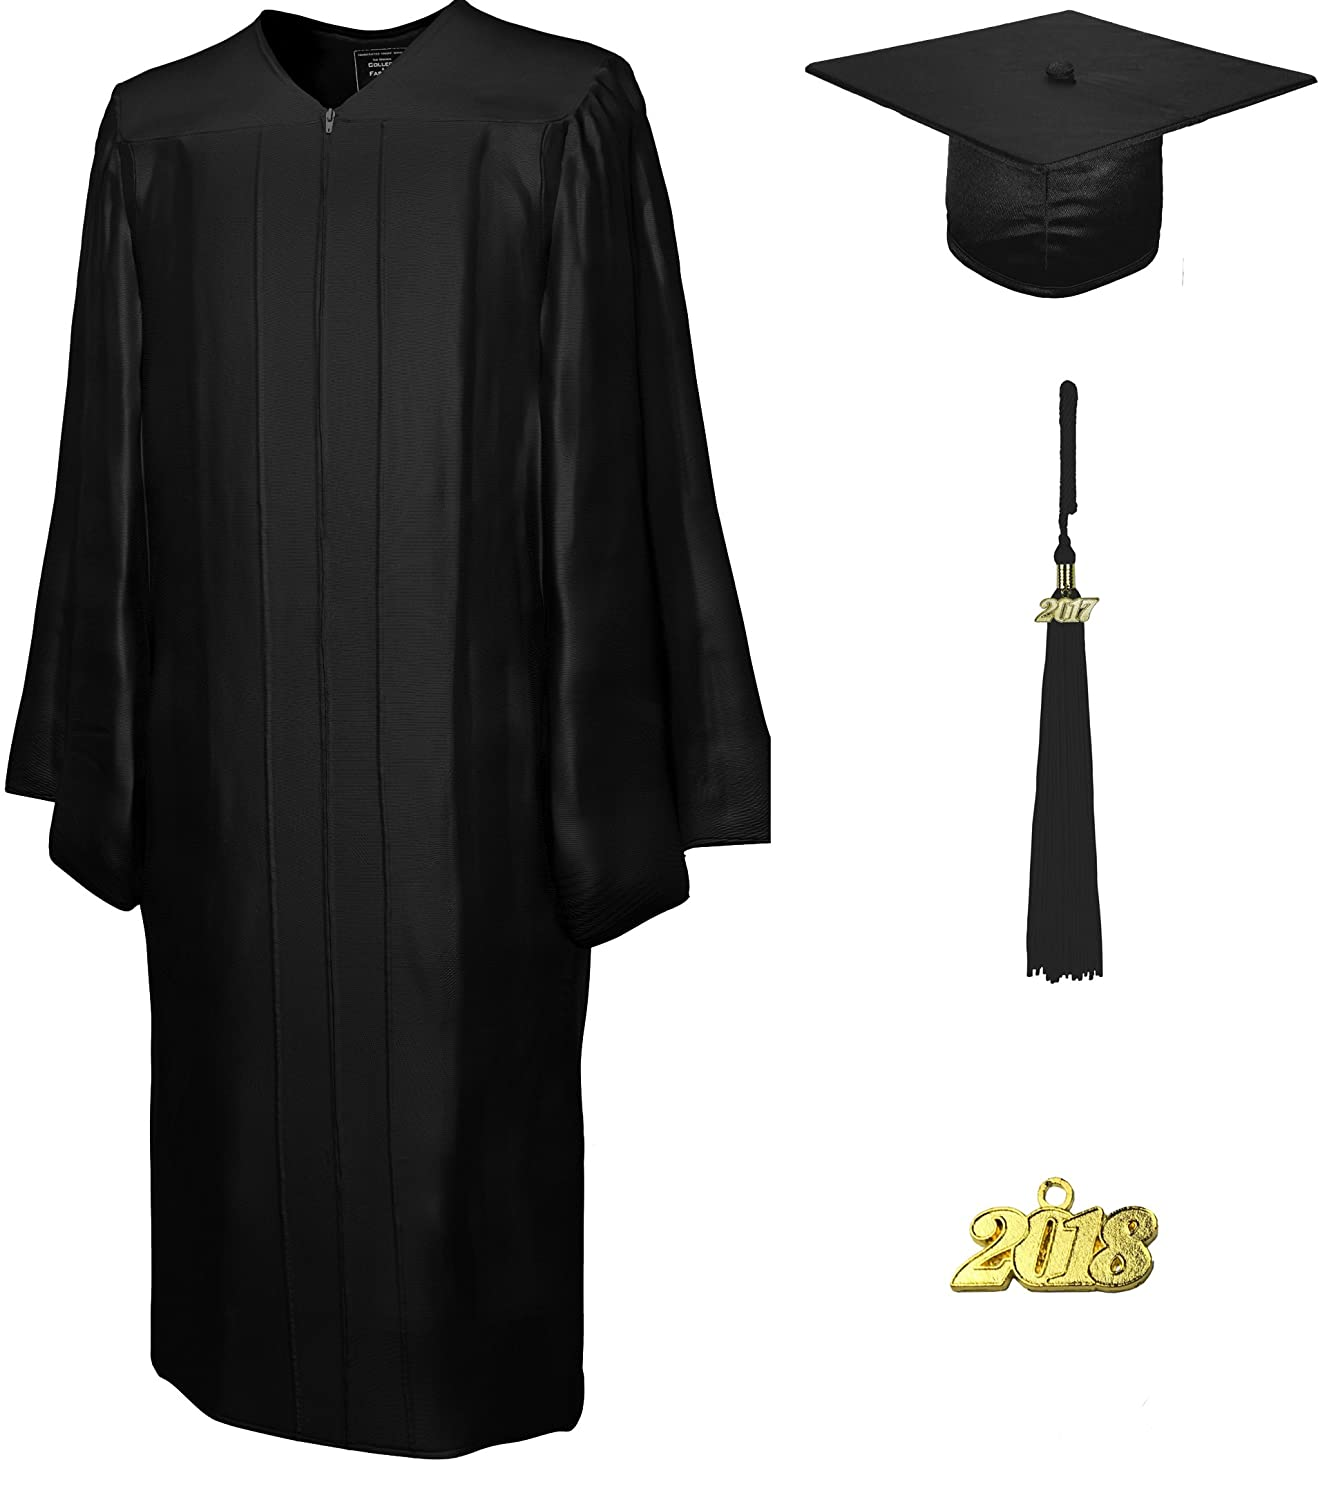 CollegeFashion Cap & Gown & Tassel, Set Shiny, size 48 black College Fashion